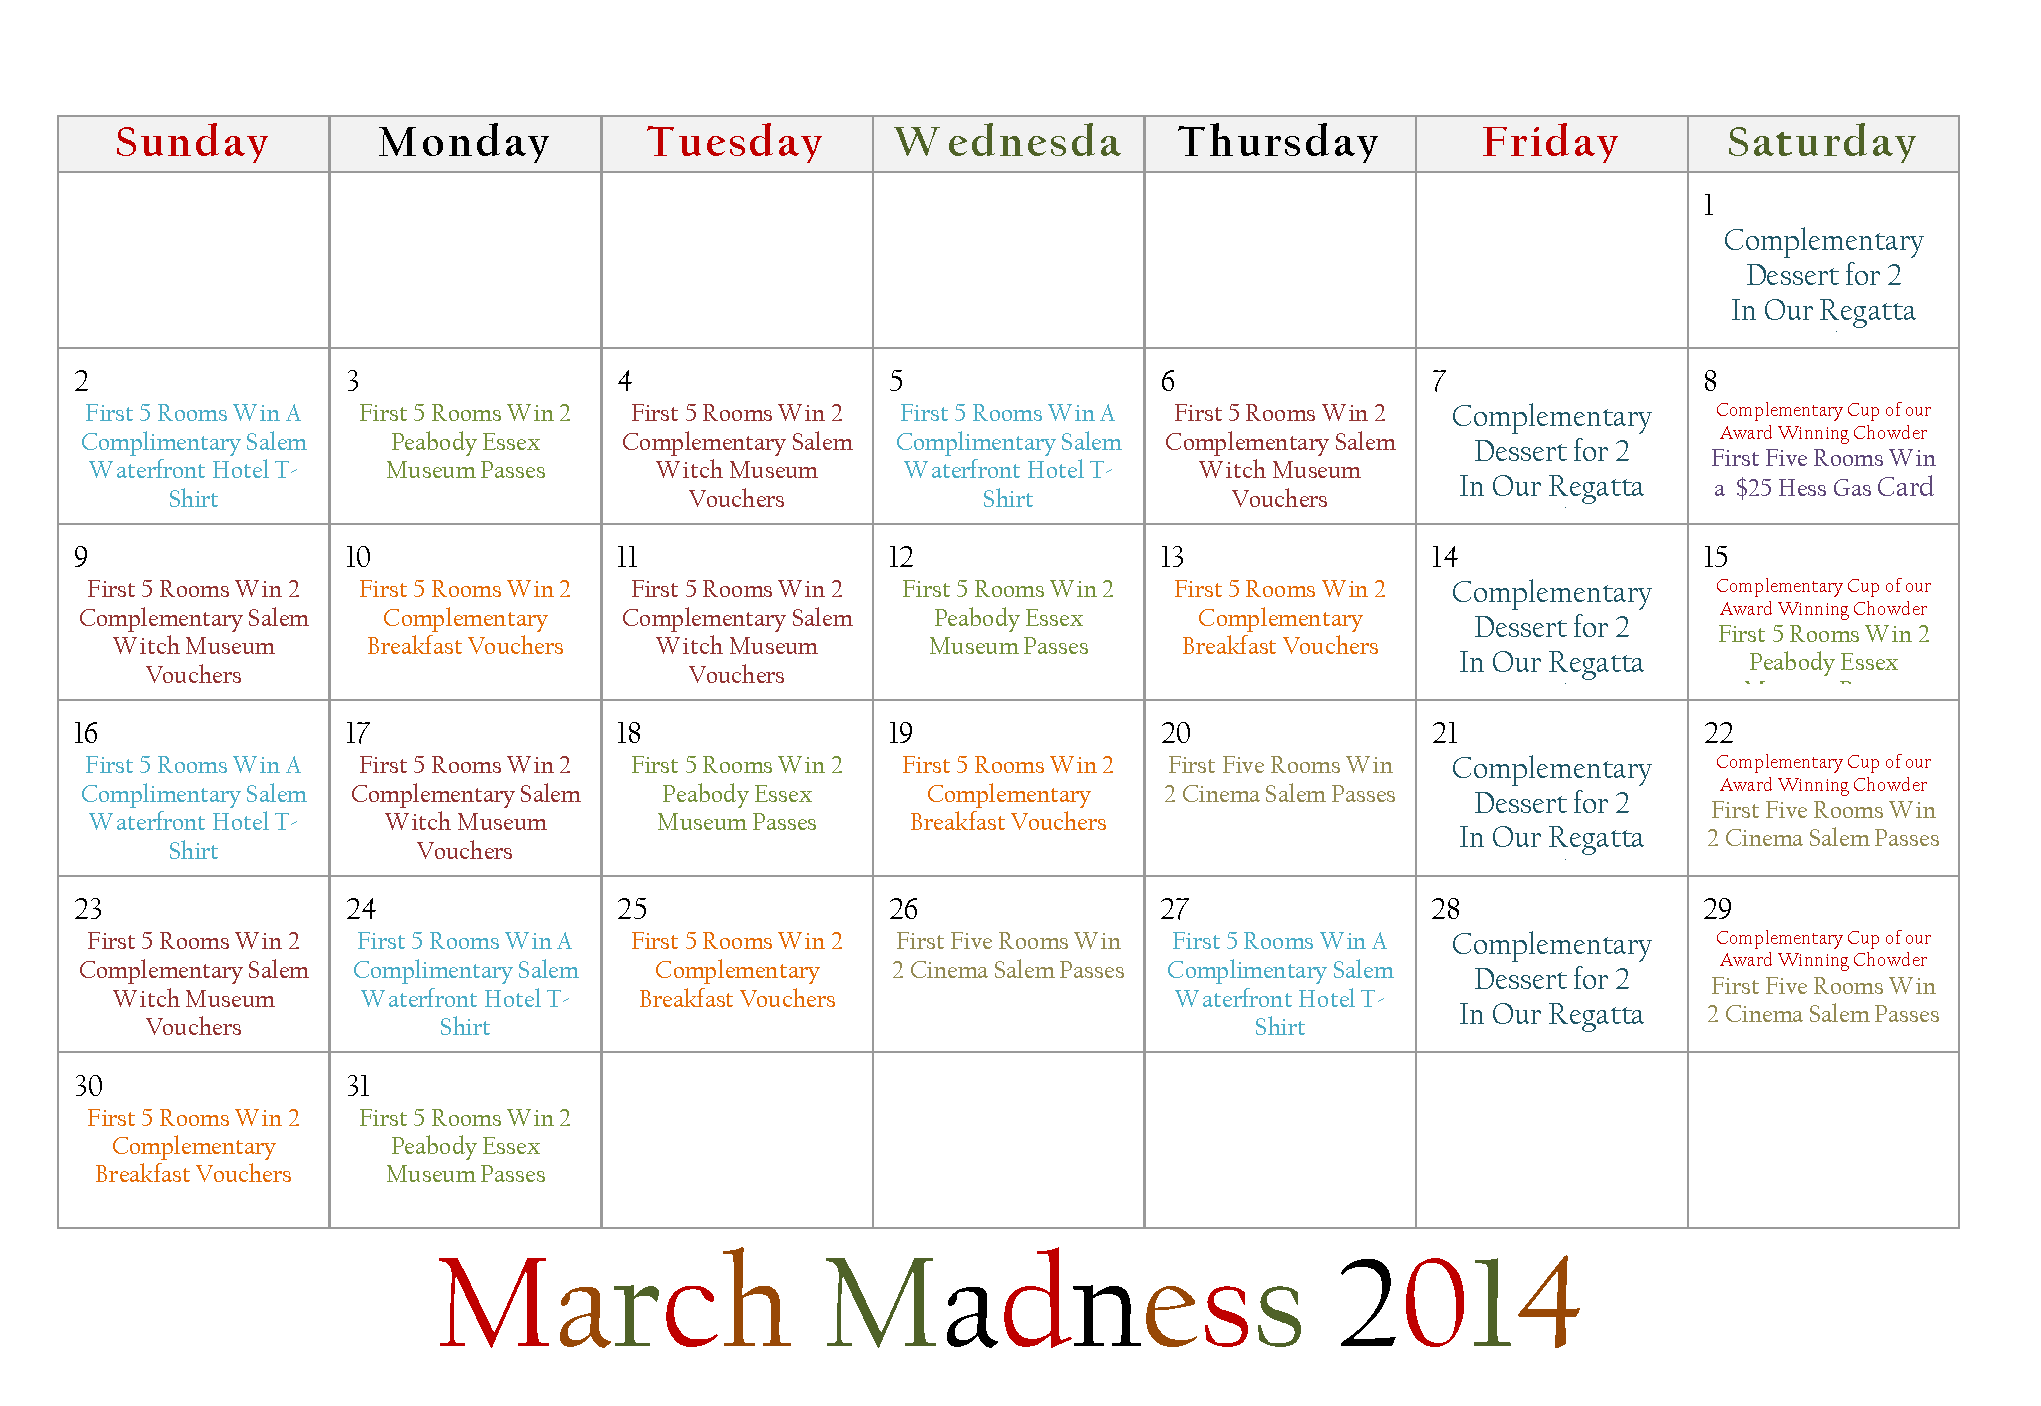 March madness dates in Perth